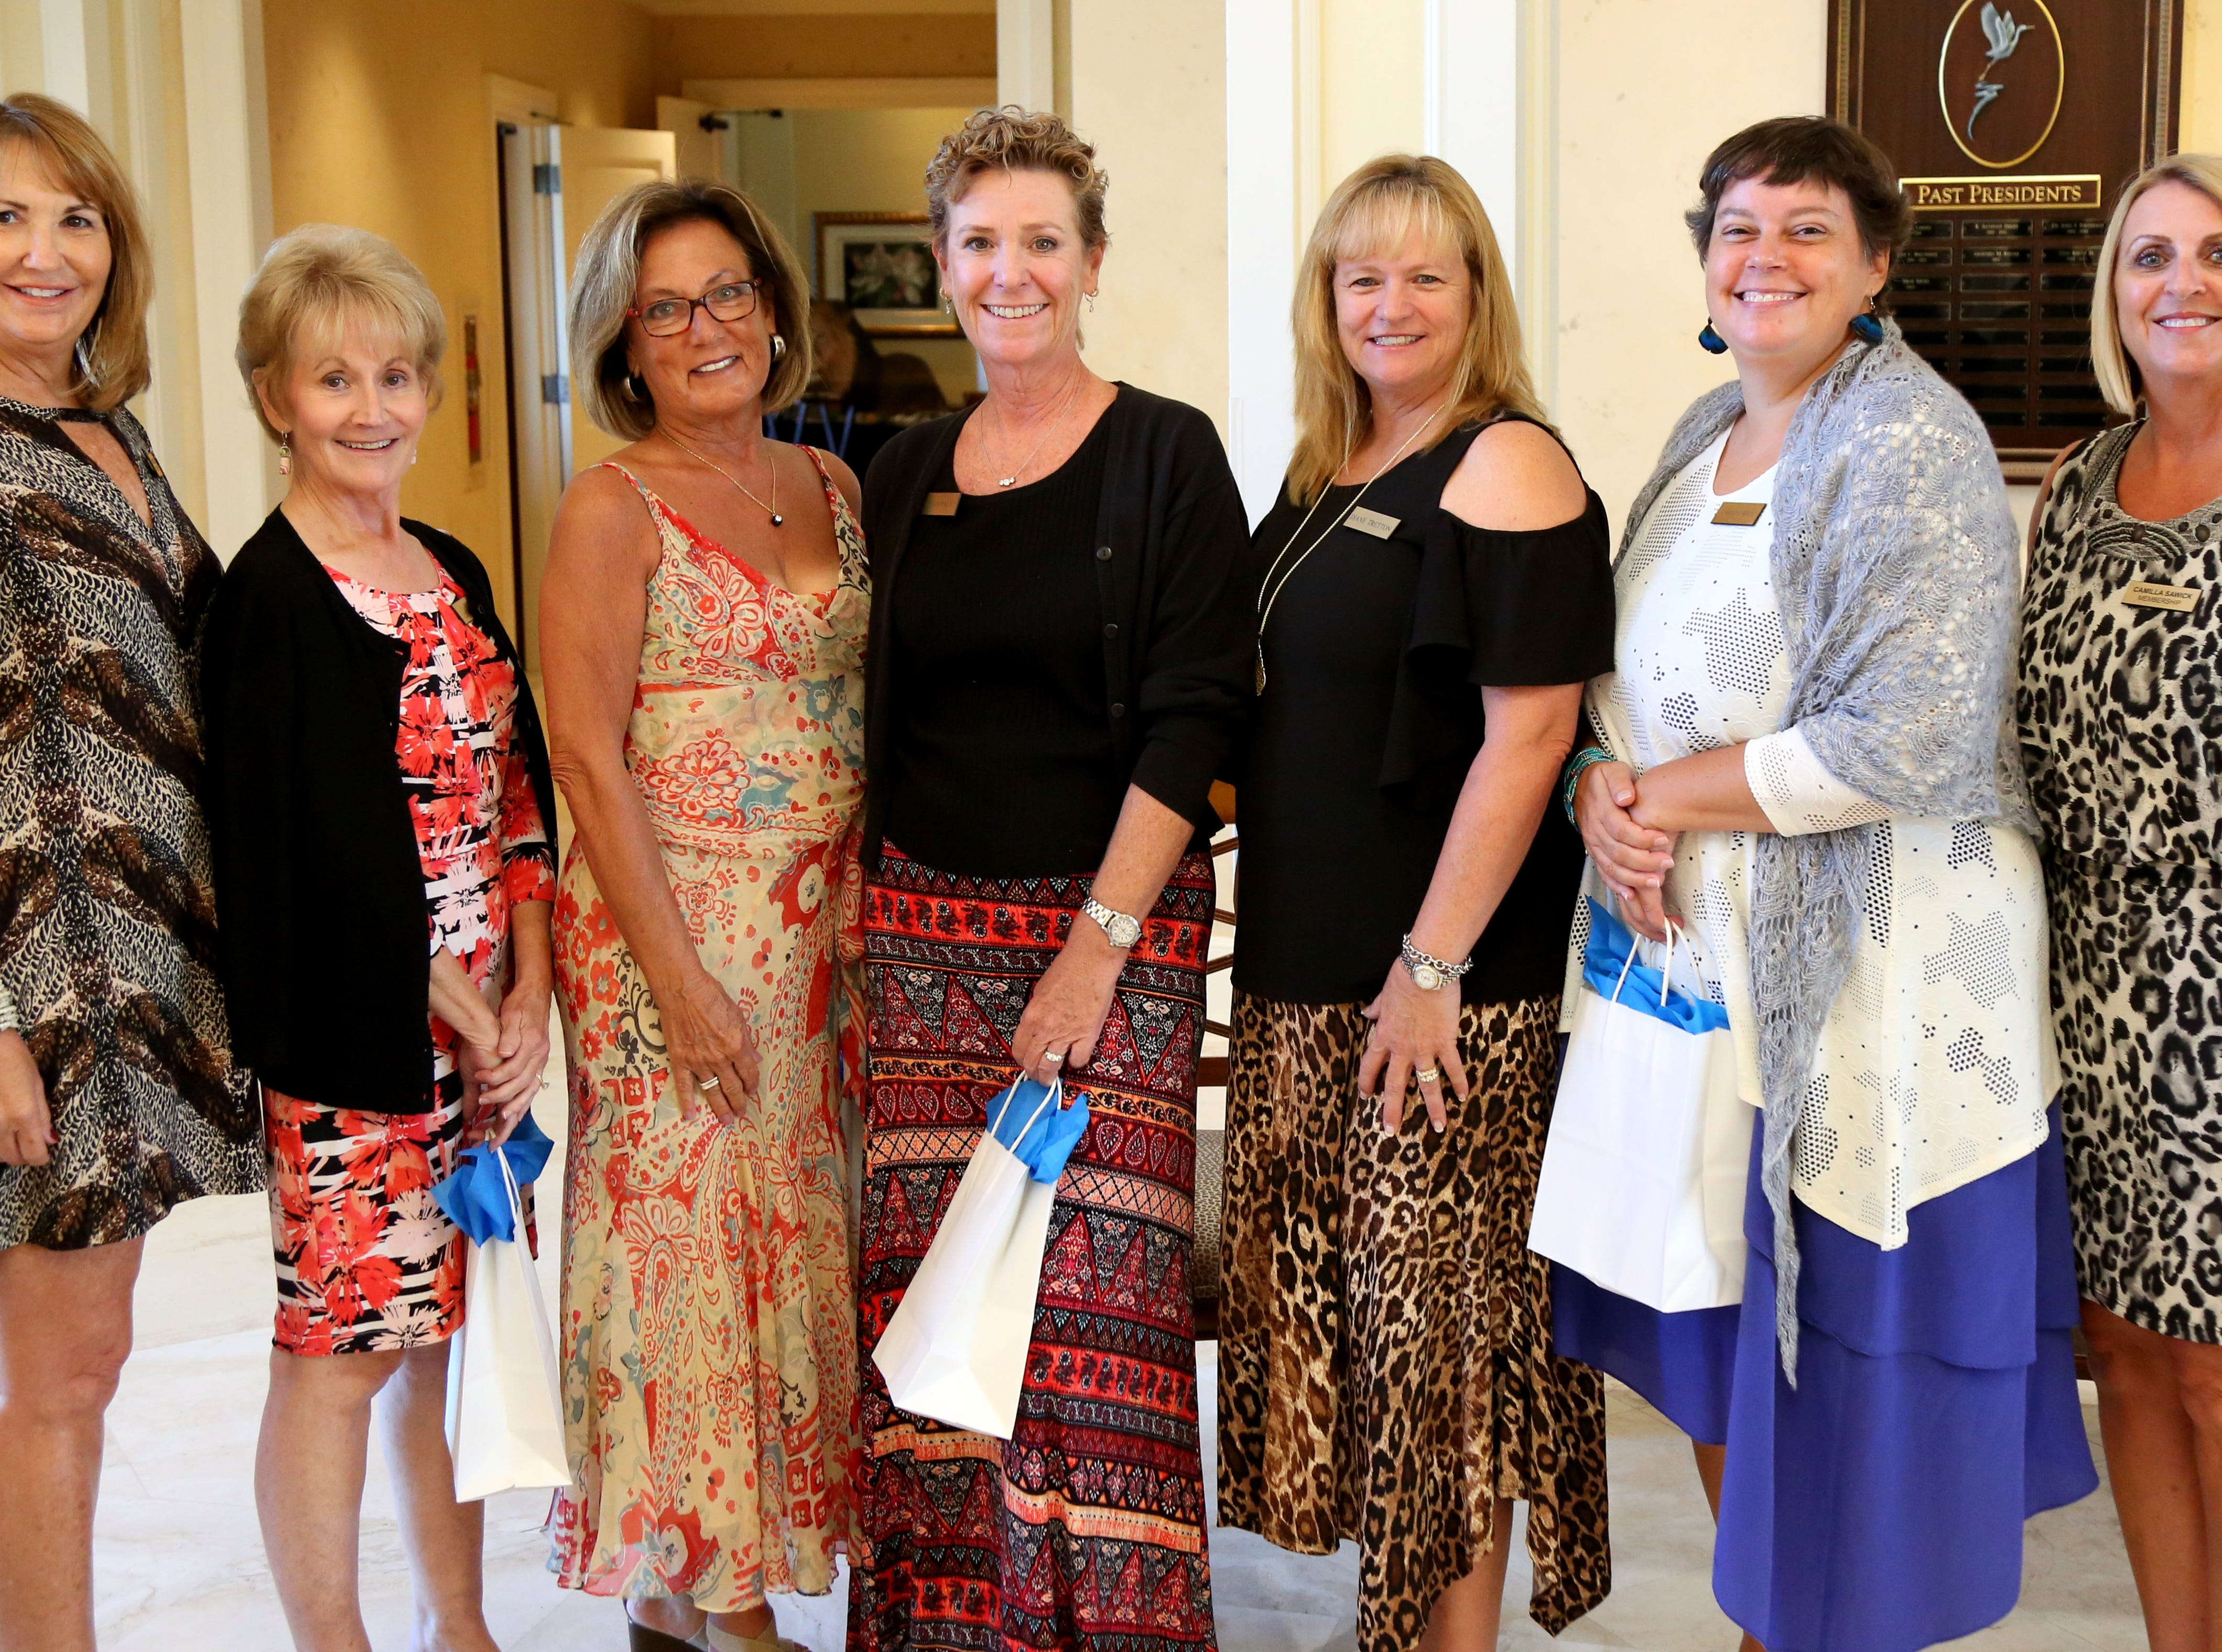 Marco Island Newcomers Club recently welcomed five new members at the Newcomers Welcome Back Luncheon & Fashion Show. Membership chairs with new members are, from left: Membership Chair Debbie Kelly, Patty Crain-Stroud, Sue Little, Laura Zappala, Diane Tretton, Caroline Reich, and Membership Chair Camilla Sawick.